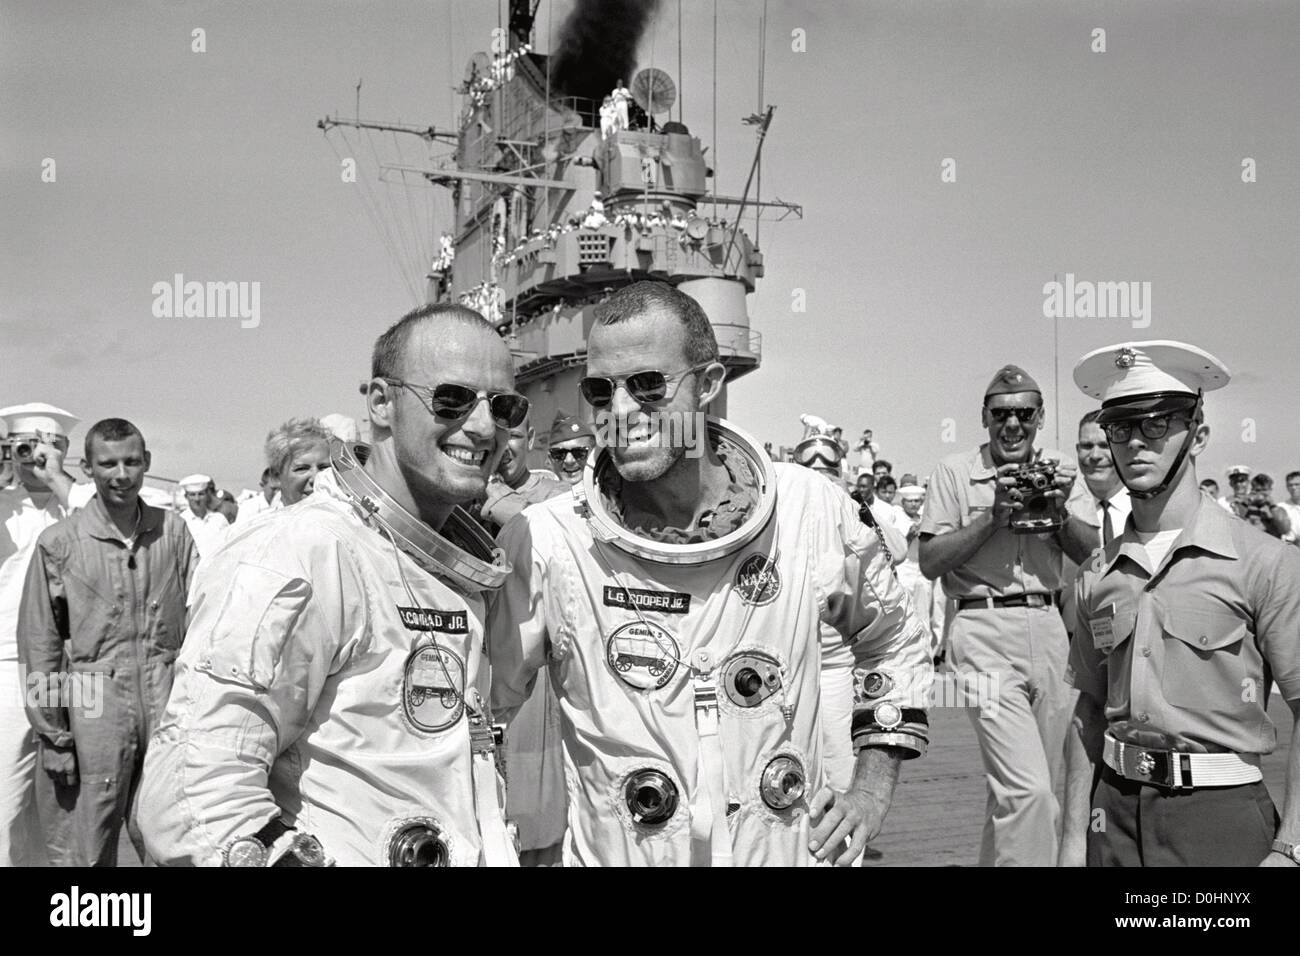 Astronauts L. Gordon Cooper Jr. (right) and Charles Conrad Jr. walk across the deck of the recovery aircraft carrier Stock Photo